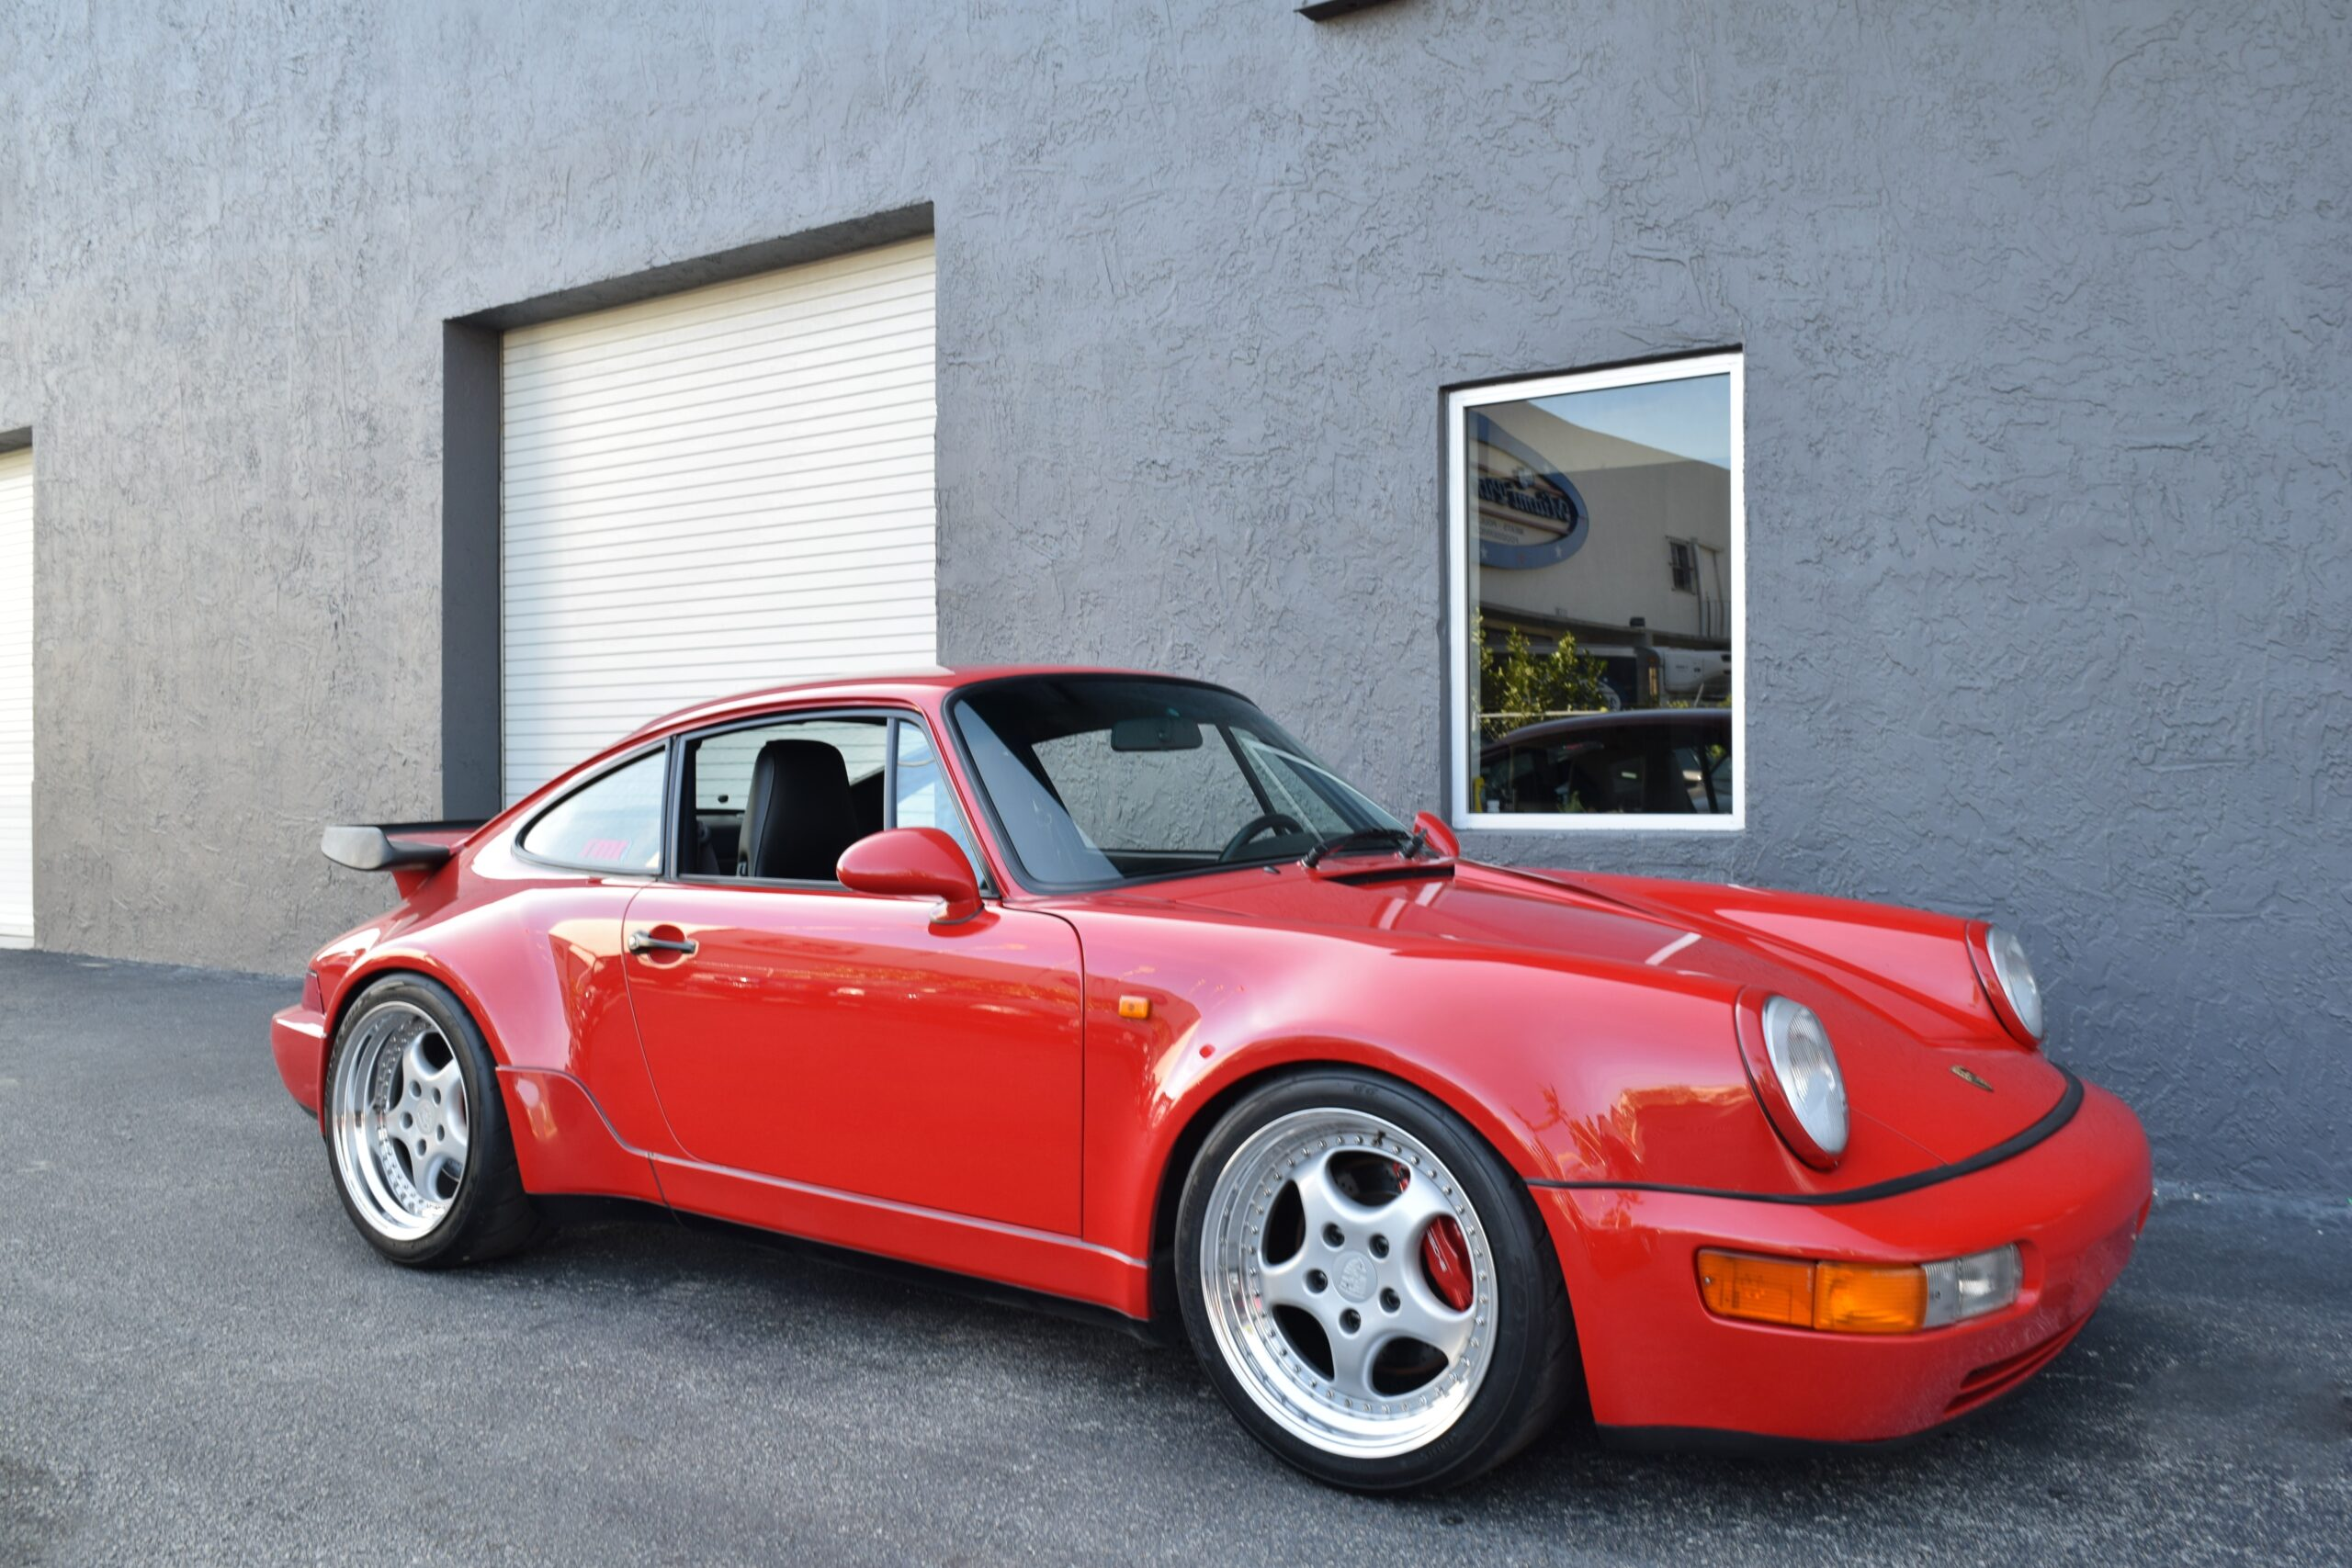 1991 Porsche 911 Turbo 964 28K Miles-Sunroof Delete-Big Brakes-3.8L Twin Plug – Limited Slip Differential